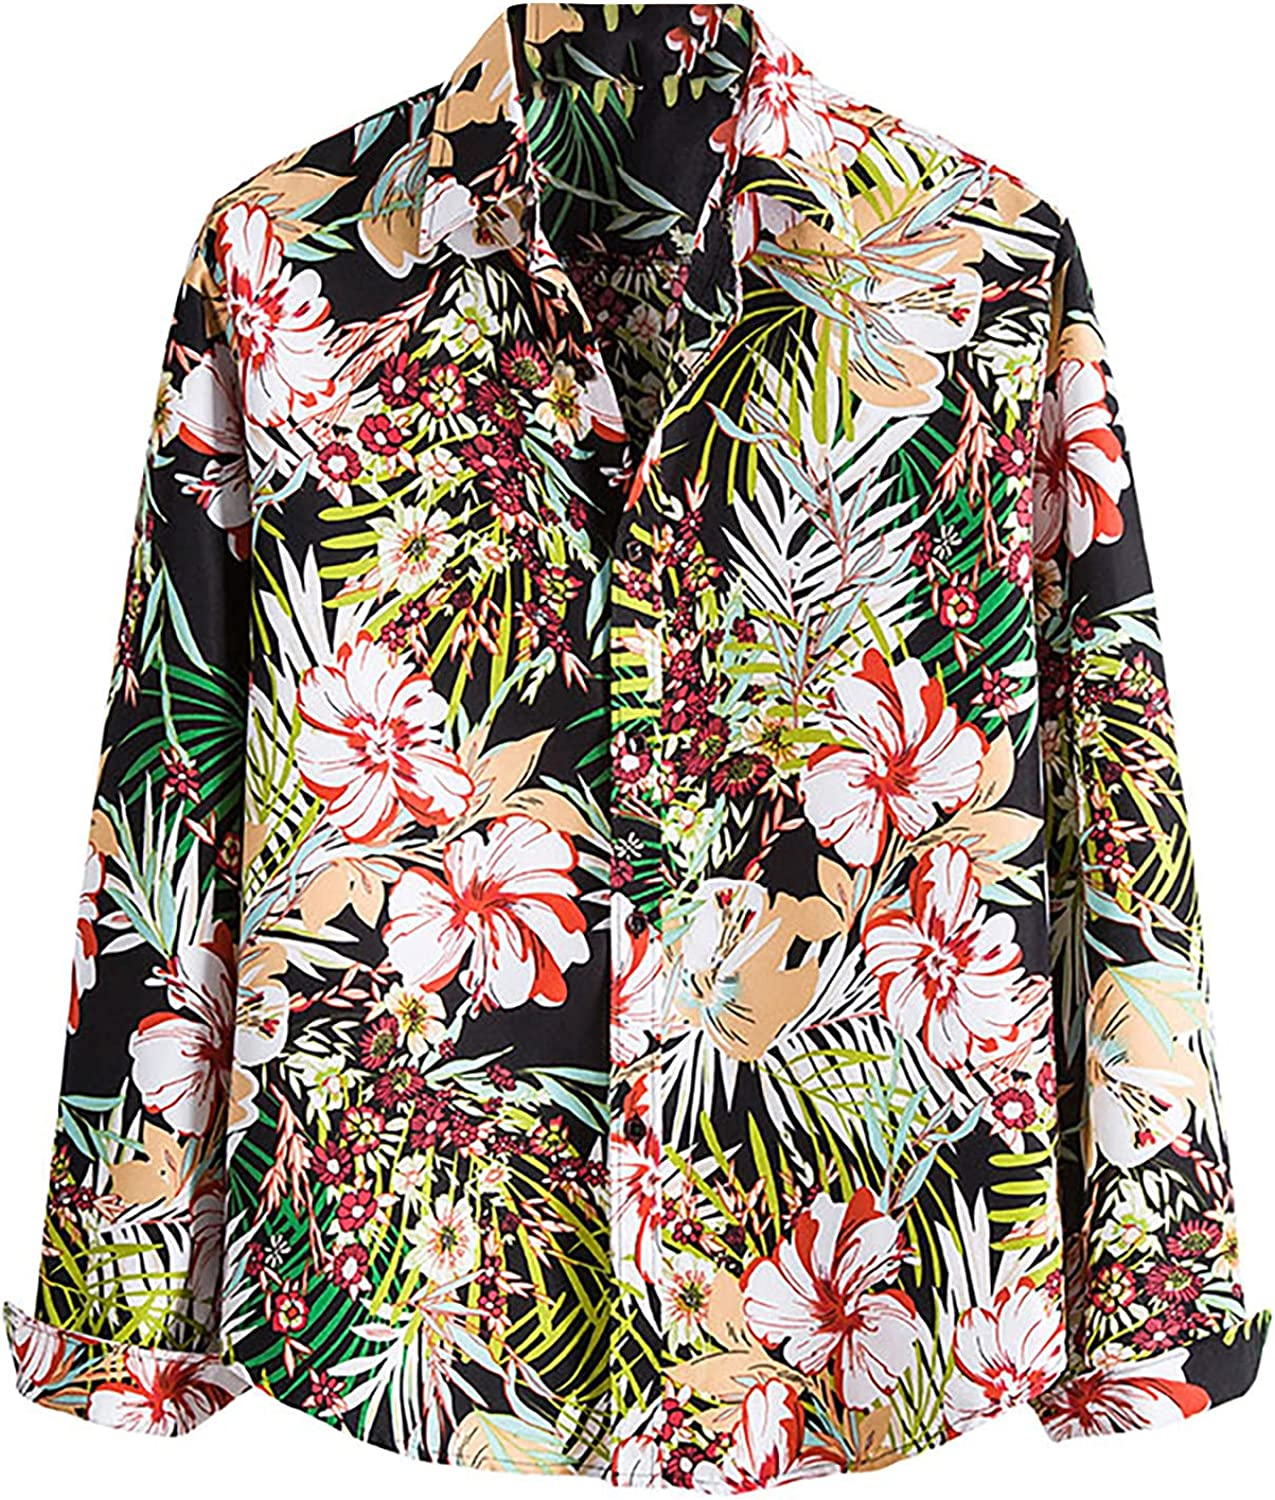 Men's Stylish Floral Shirts Casual Long Sleeve Flower Printed Button Down Aloha Shirt